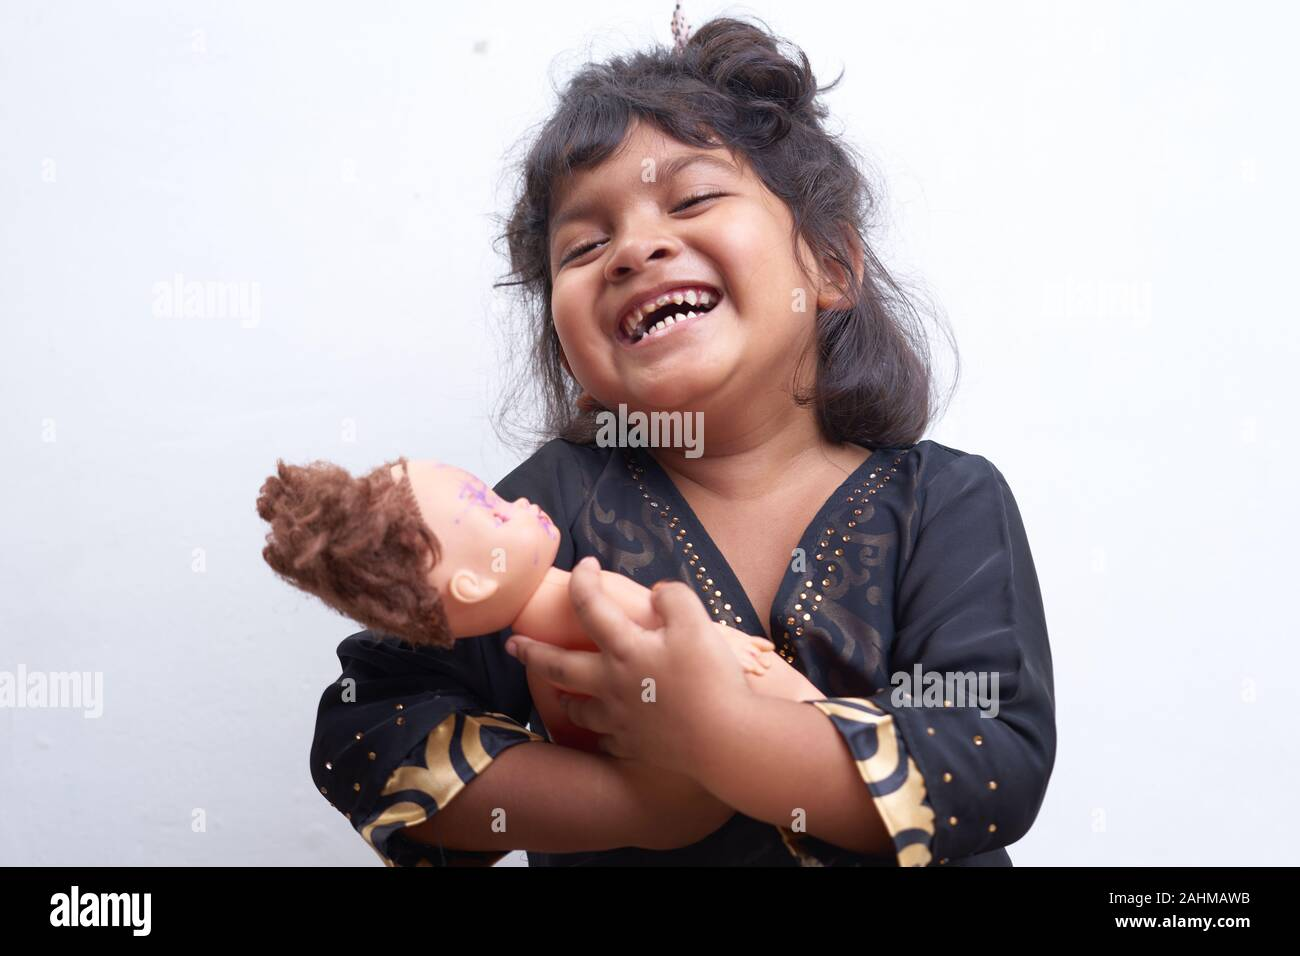 Asian little girl as a mom playing with a baby doll on white background Stock Photo